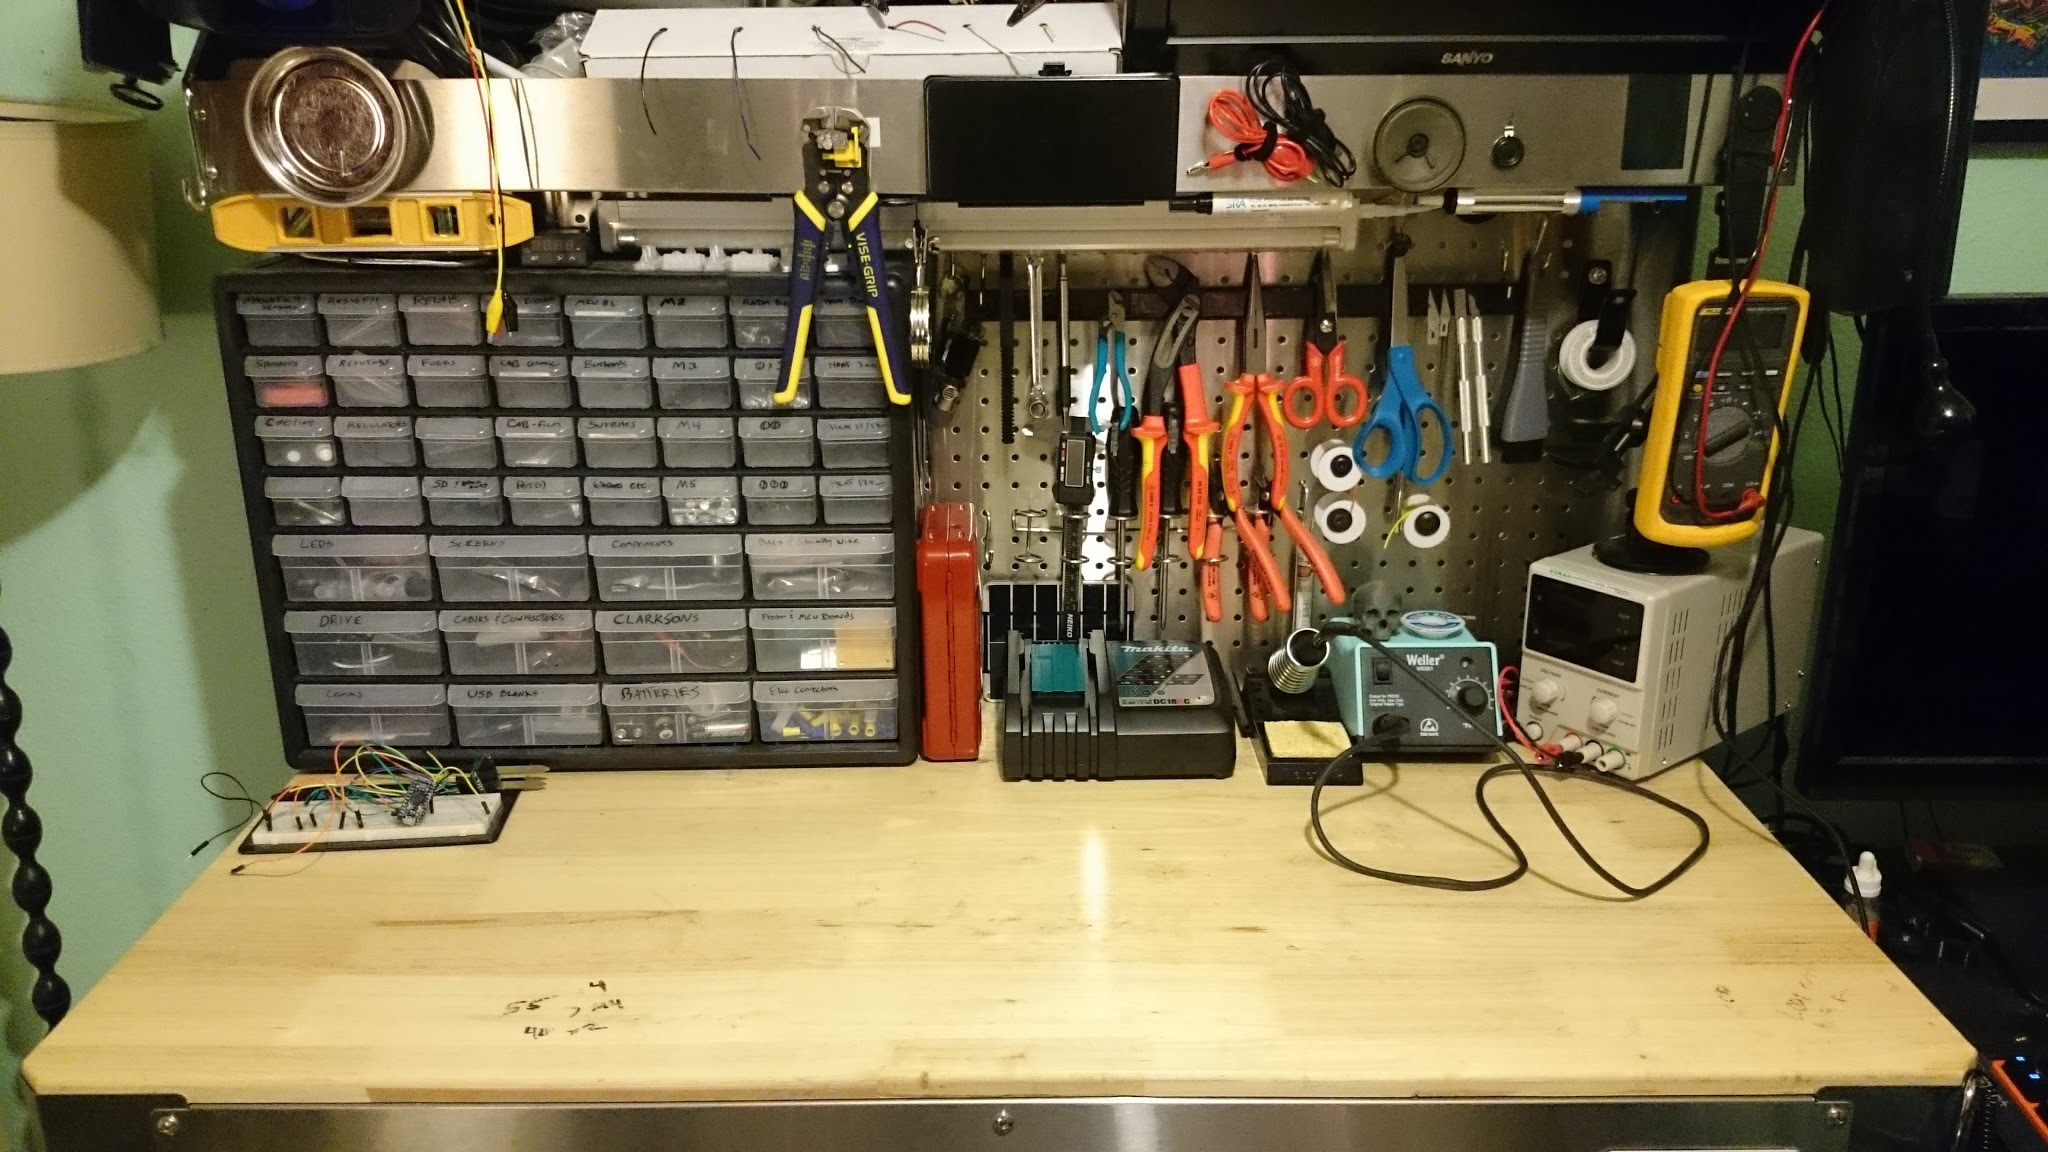 Astounding Six Hacks For Organizing Your Messy Workbench Gmtry Best Dining Table And Chair Ideas Images Gmtryco